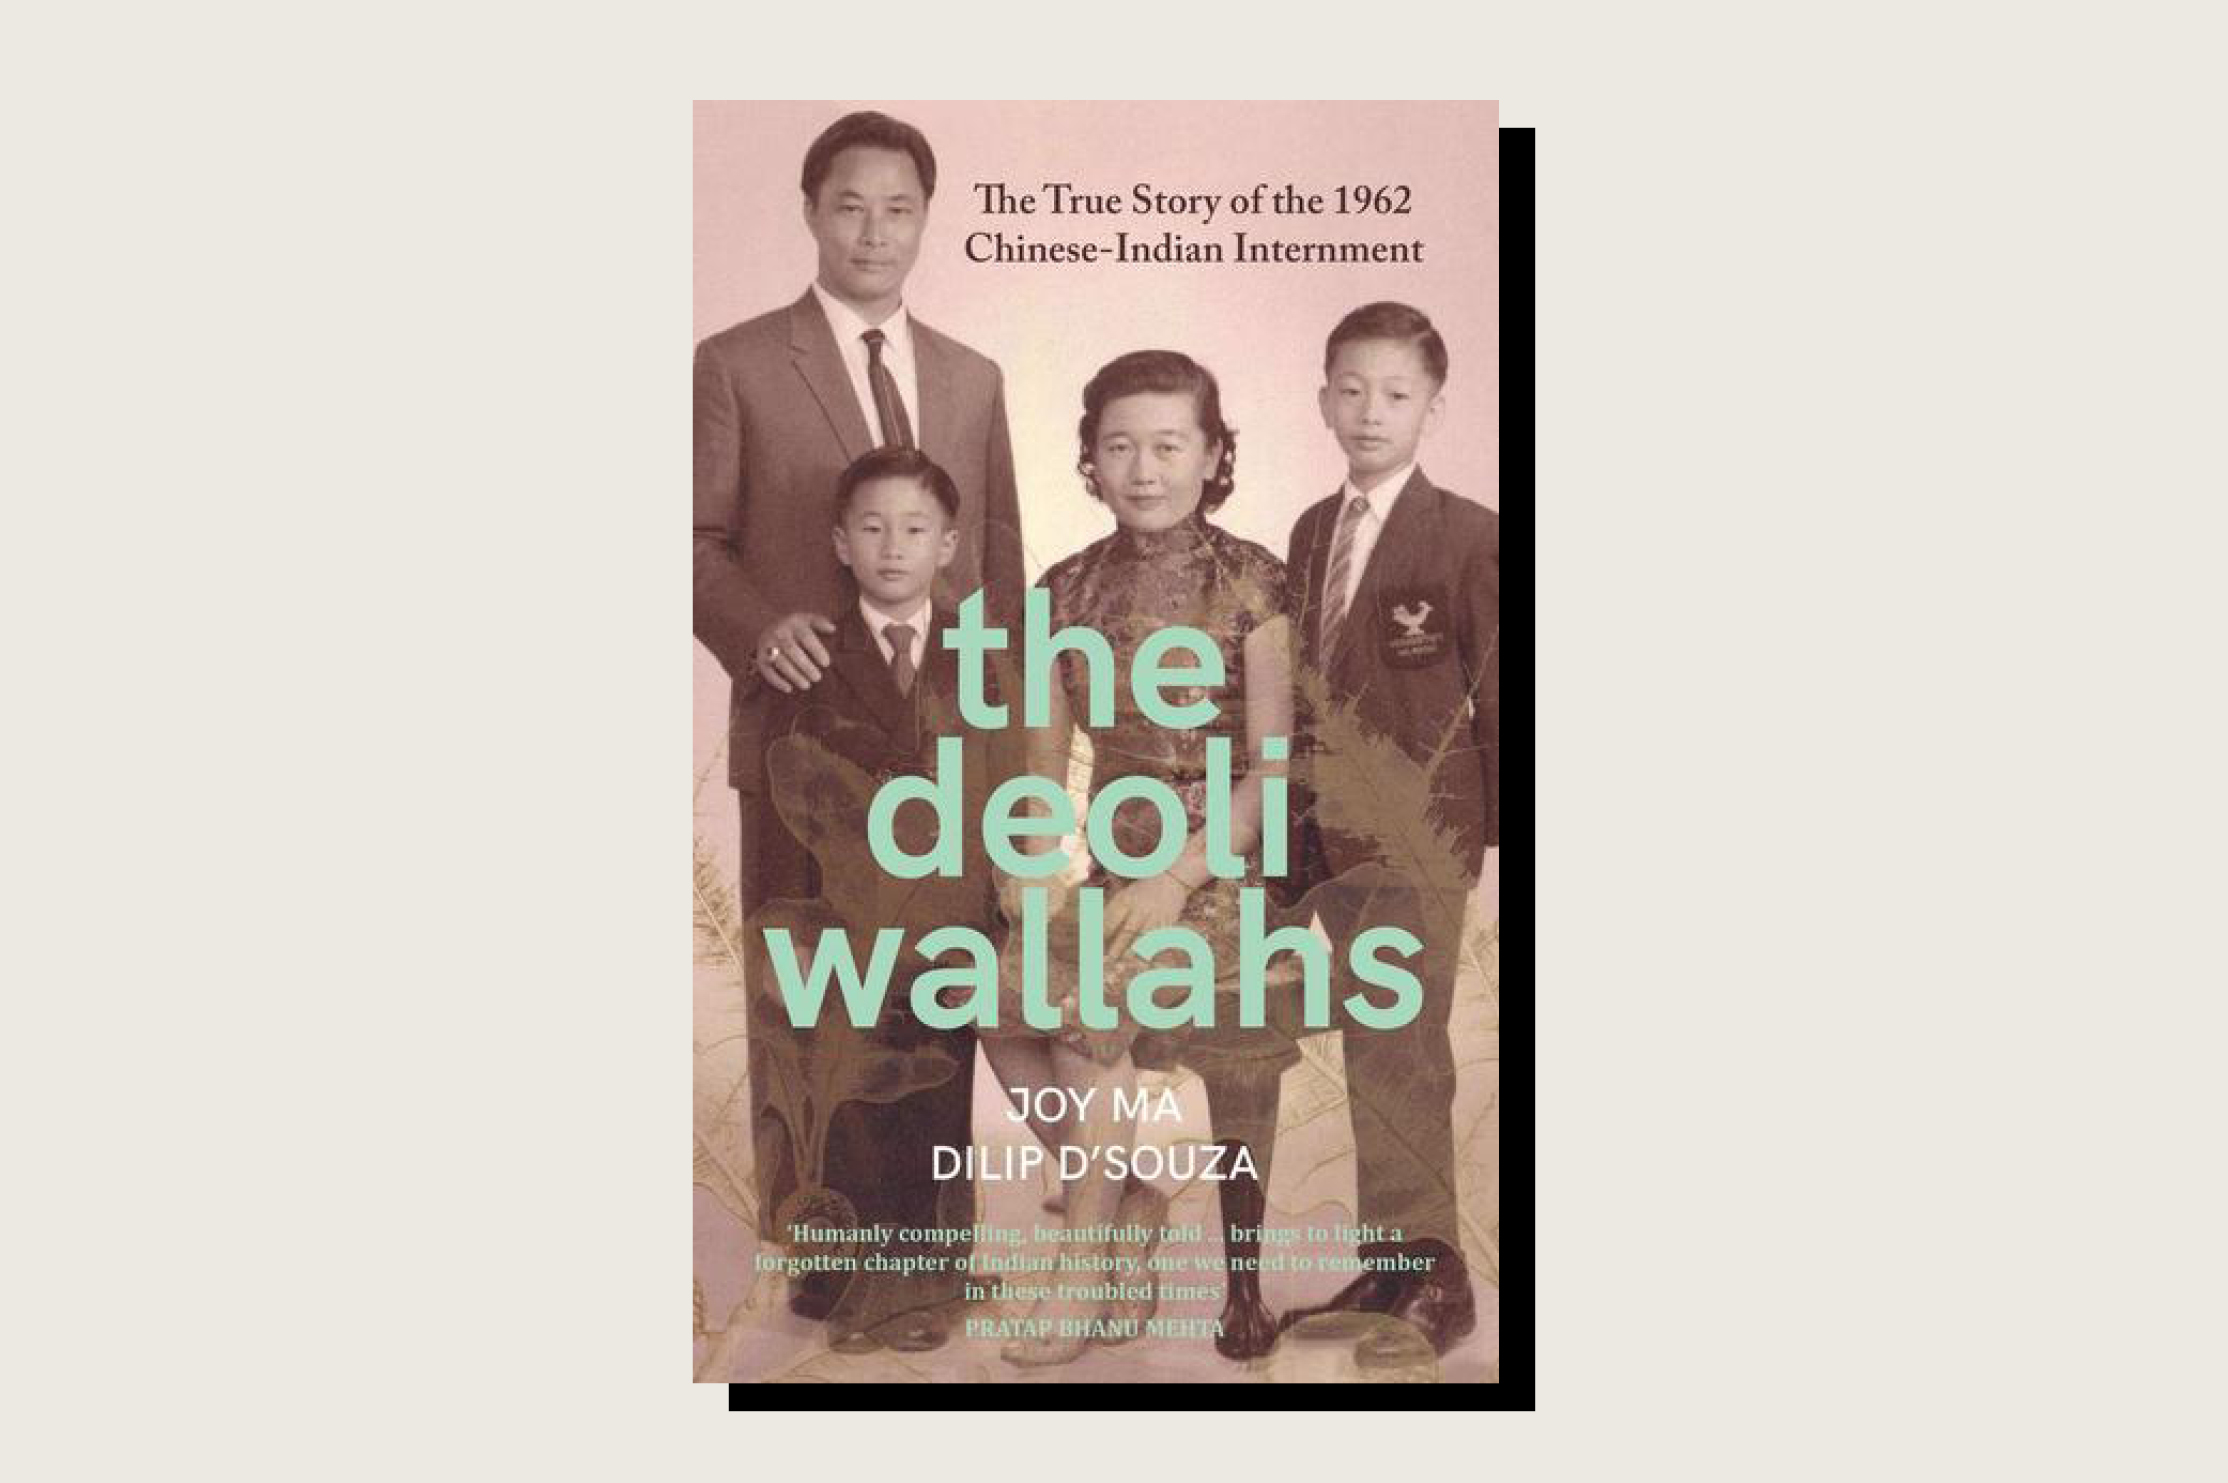 The Deoliwallahs, Joy Ma and Dilip D'Souza, Pan Macmillan India, 248 pp., Feb. 12, 2020